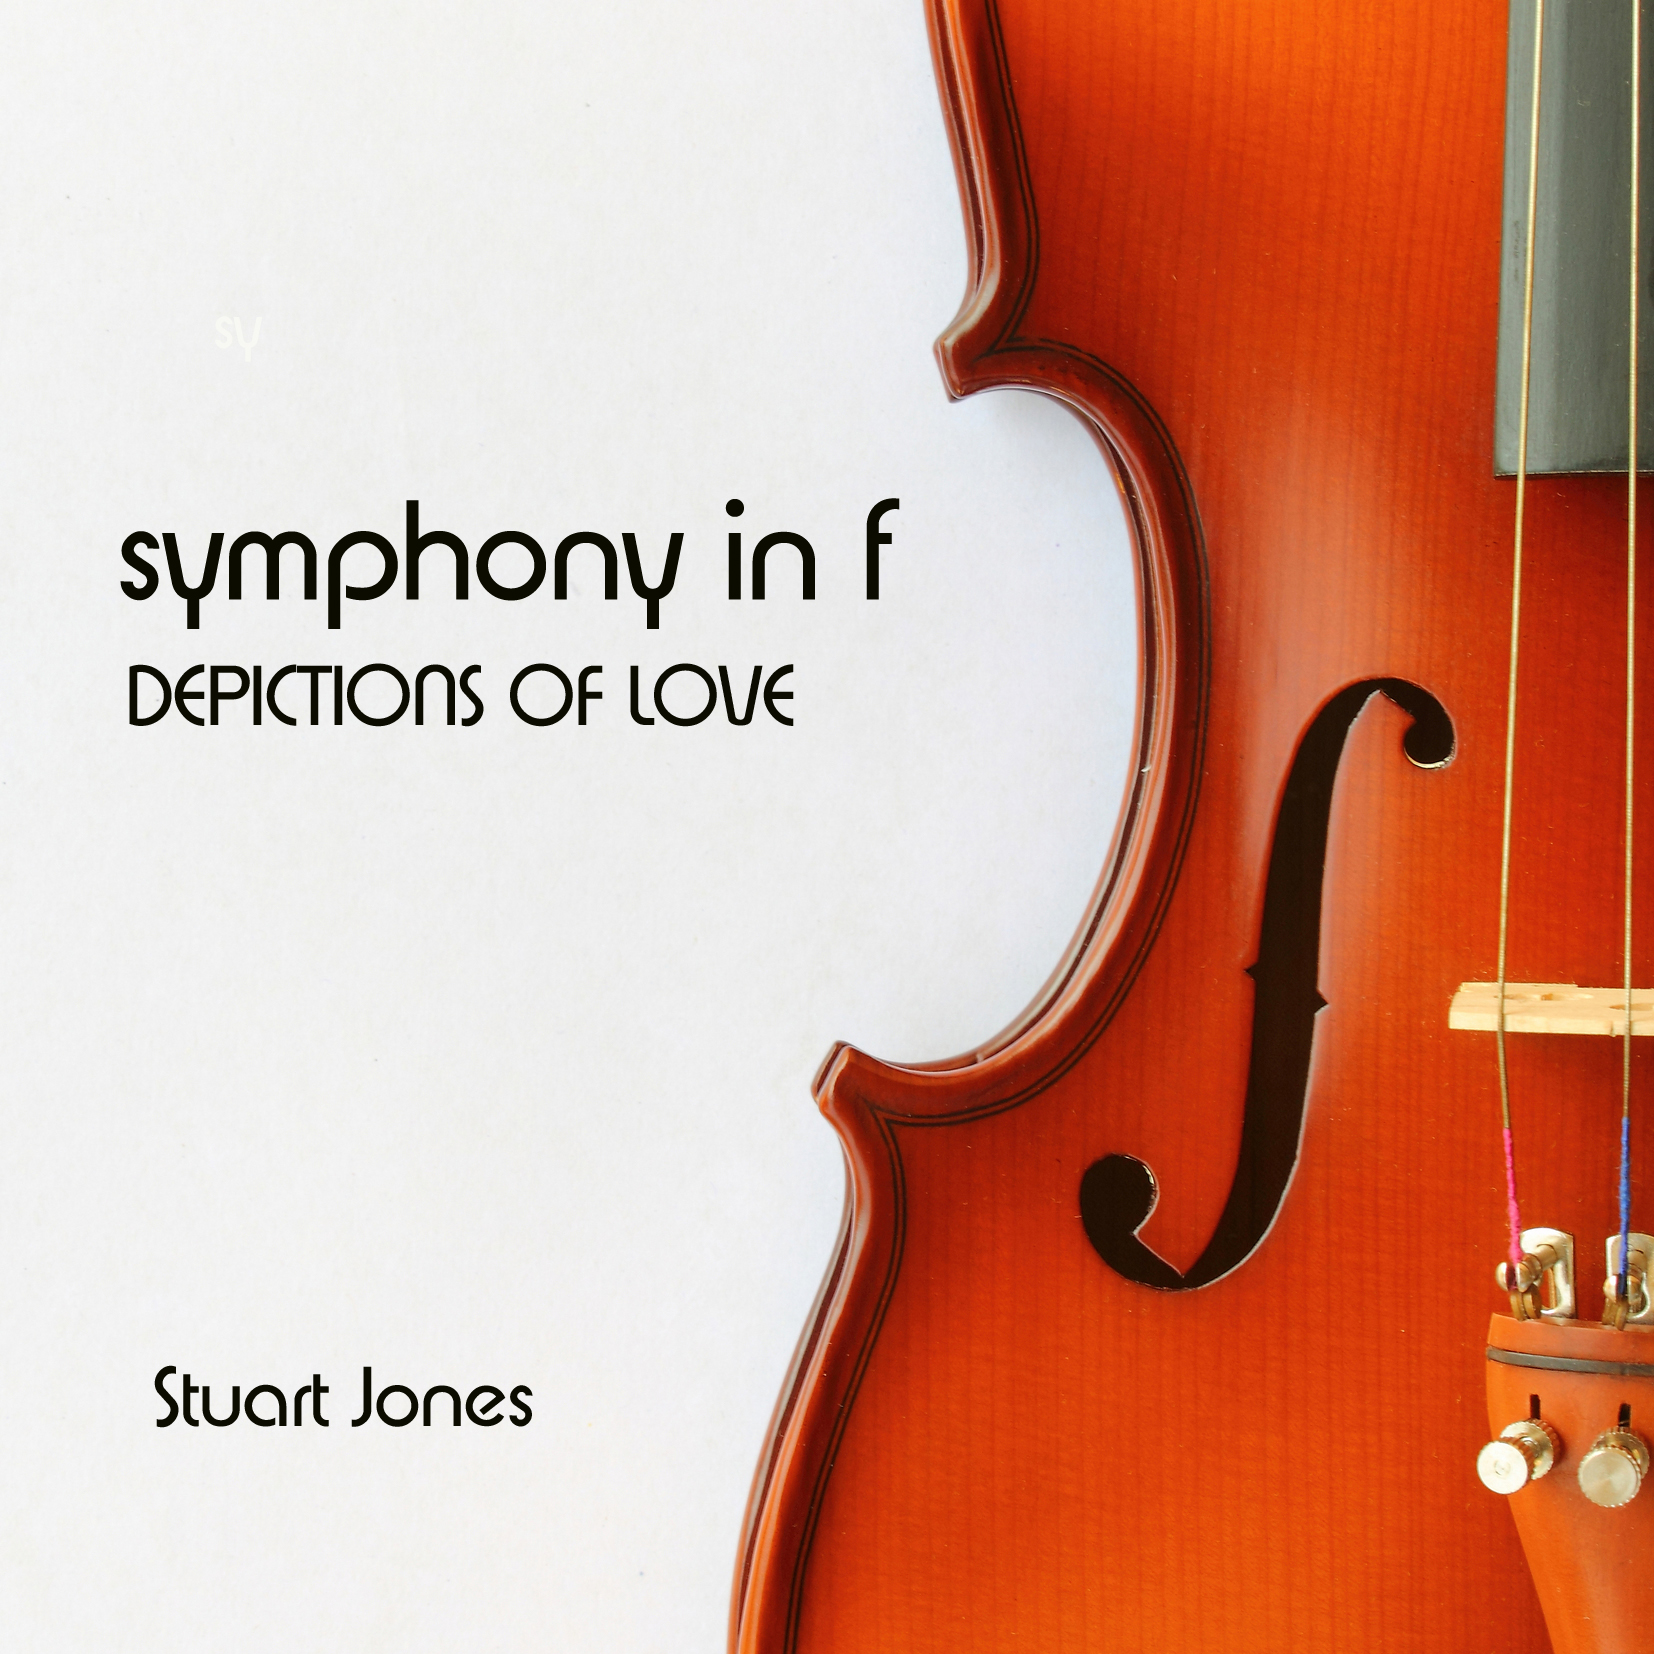 Symphony in f by Stuart Jones